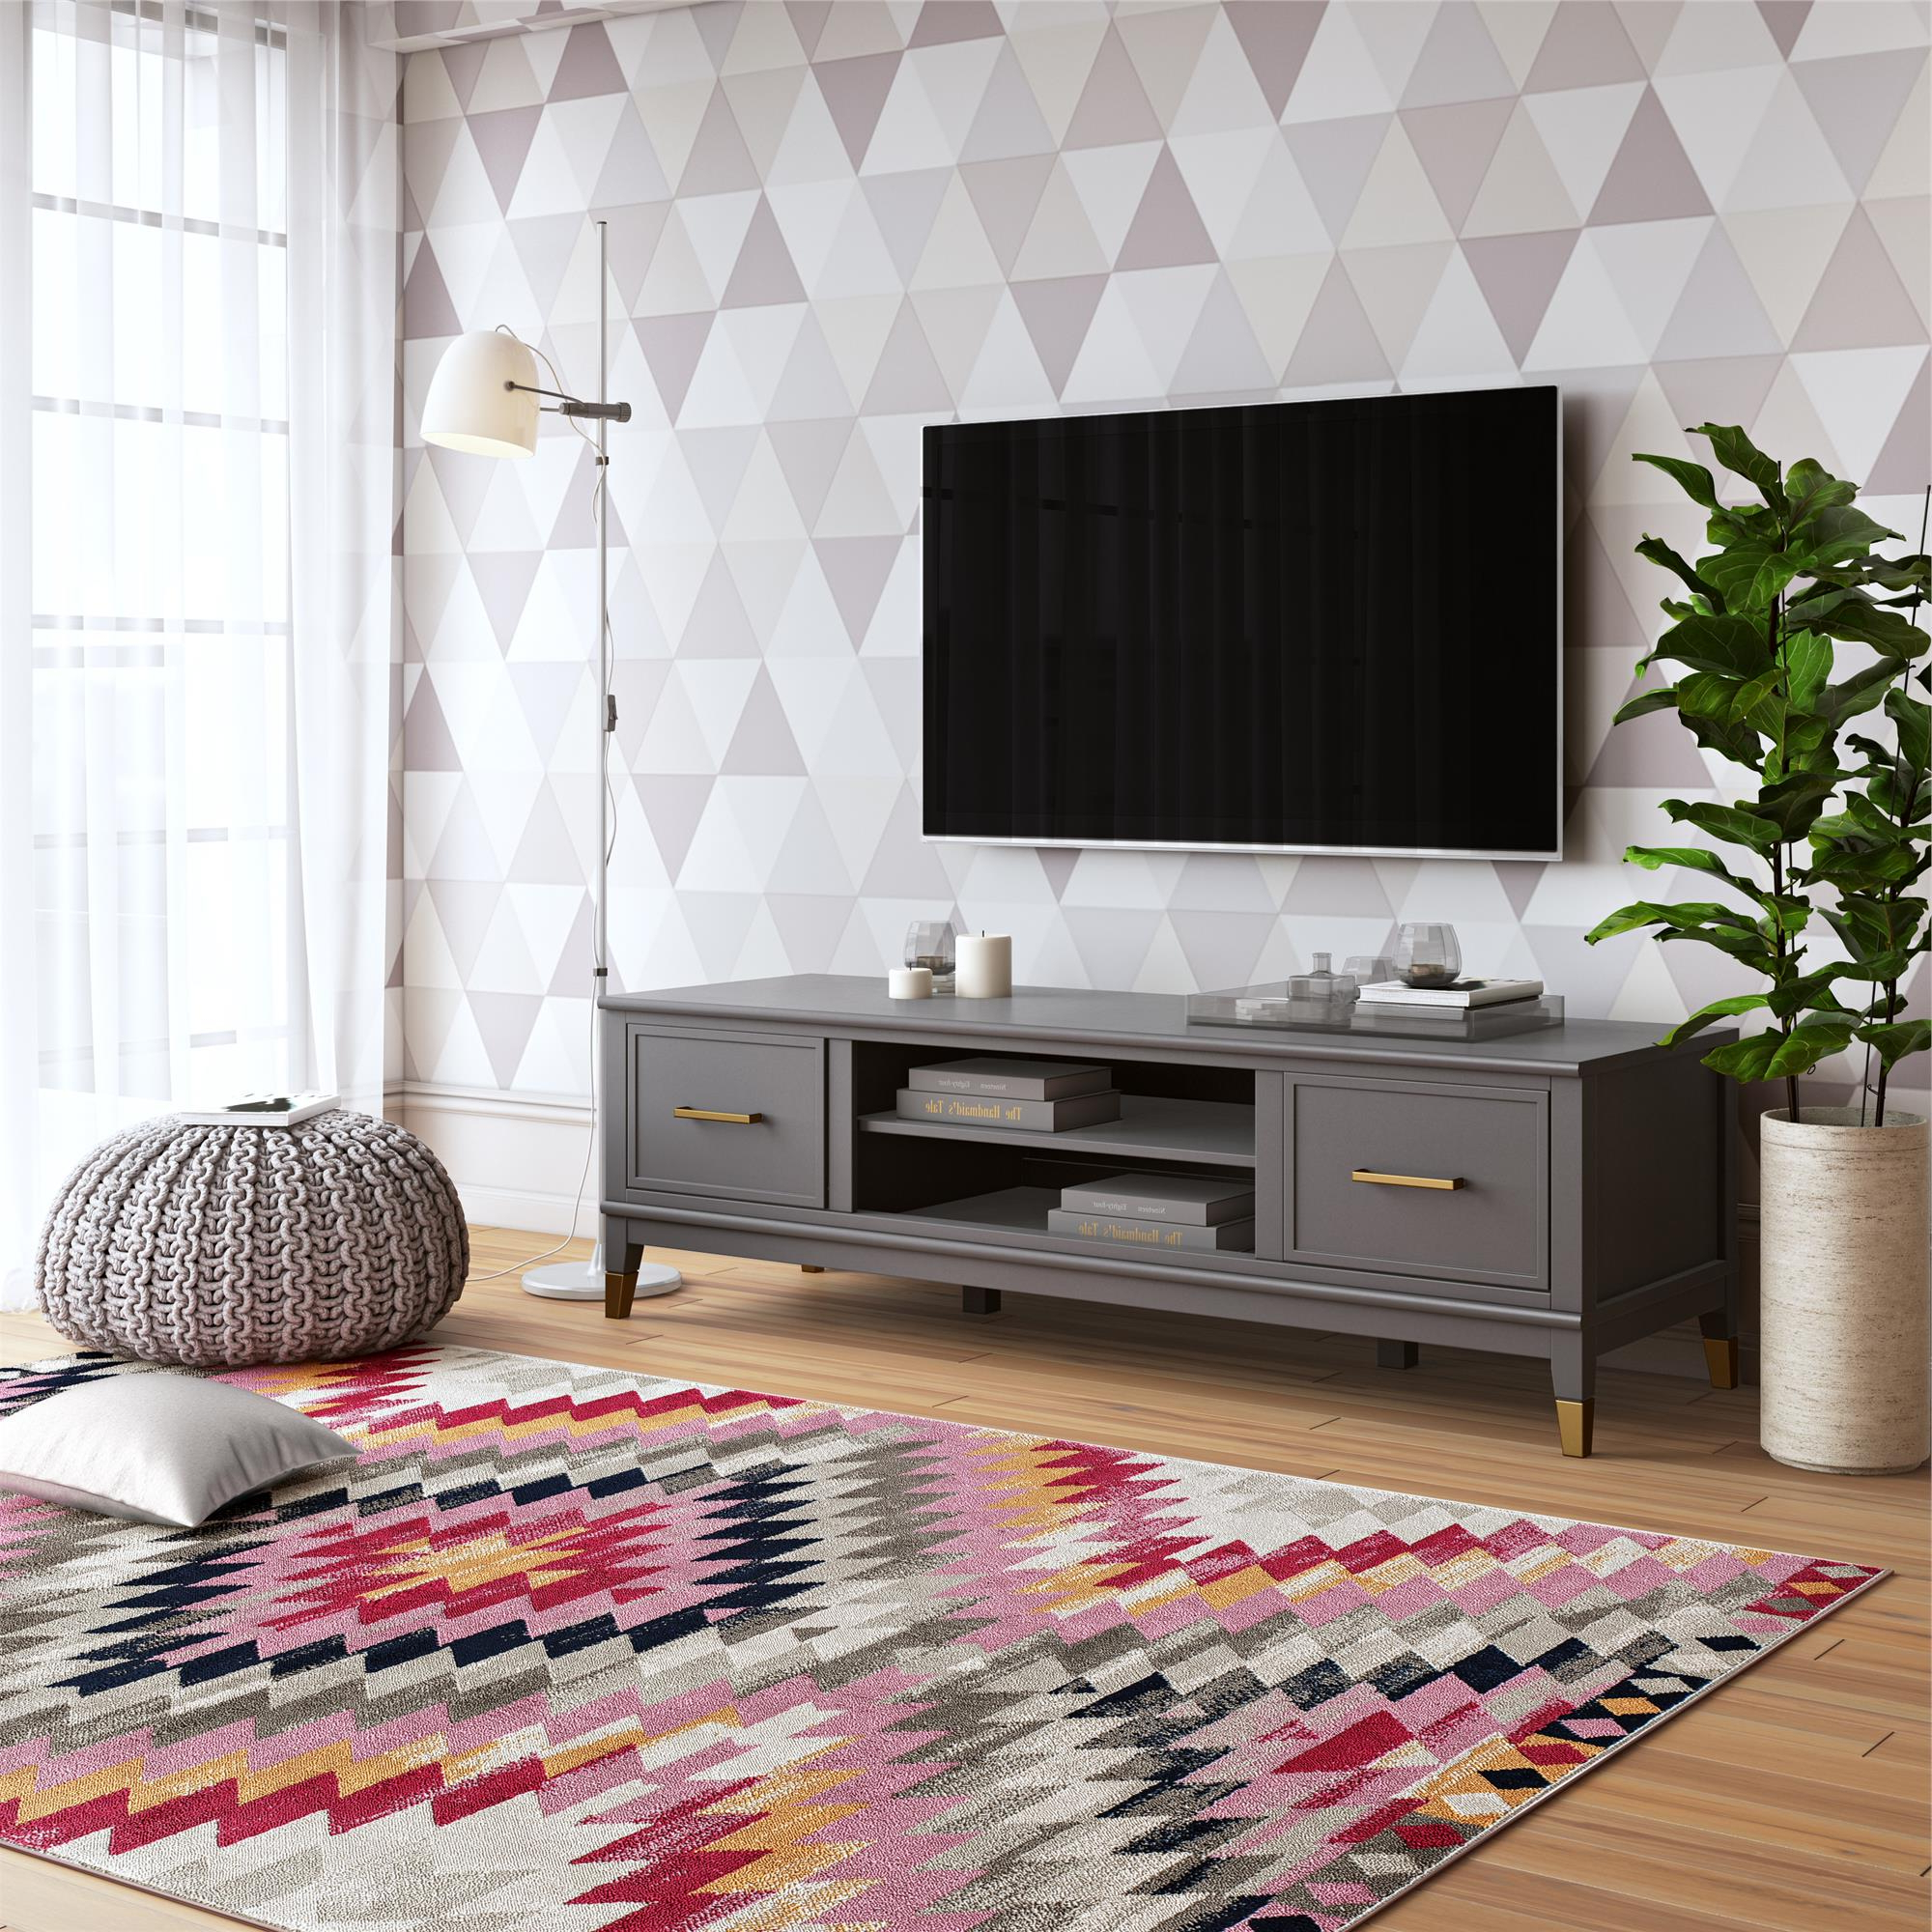 Cosmolivingcosmopolitan Westerleigh Tv Stand For Tvs With Regard To Mainstays Tv Stands For Tvs With Multiple Colors (View 15 of 20)